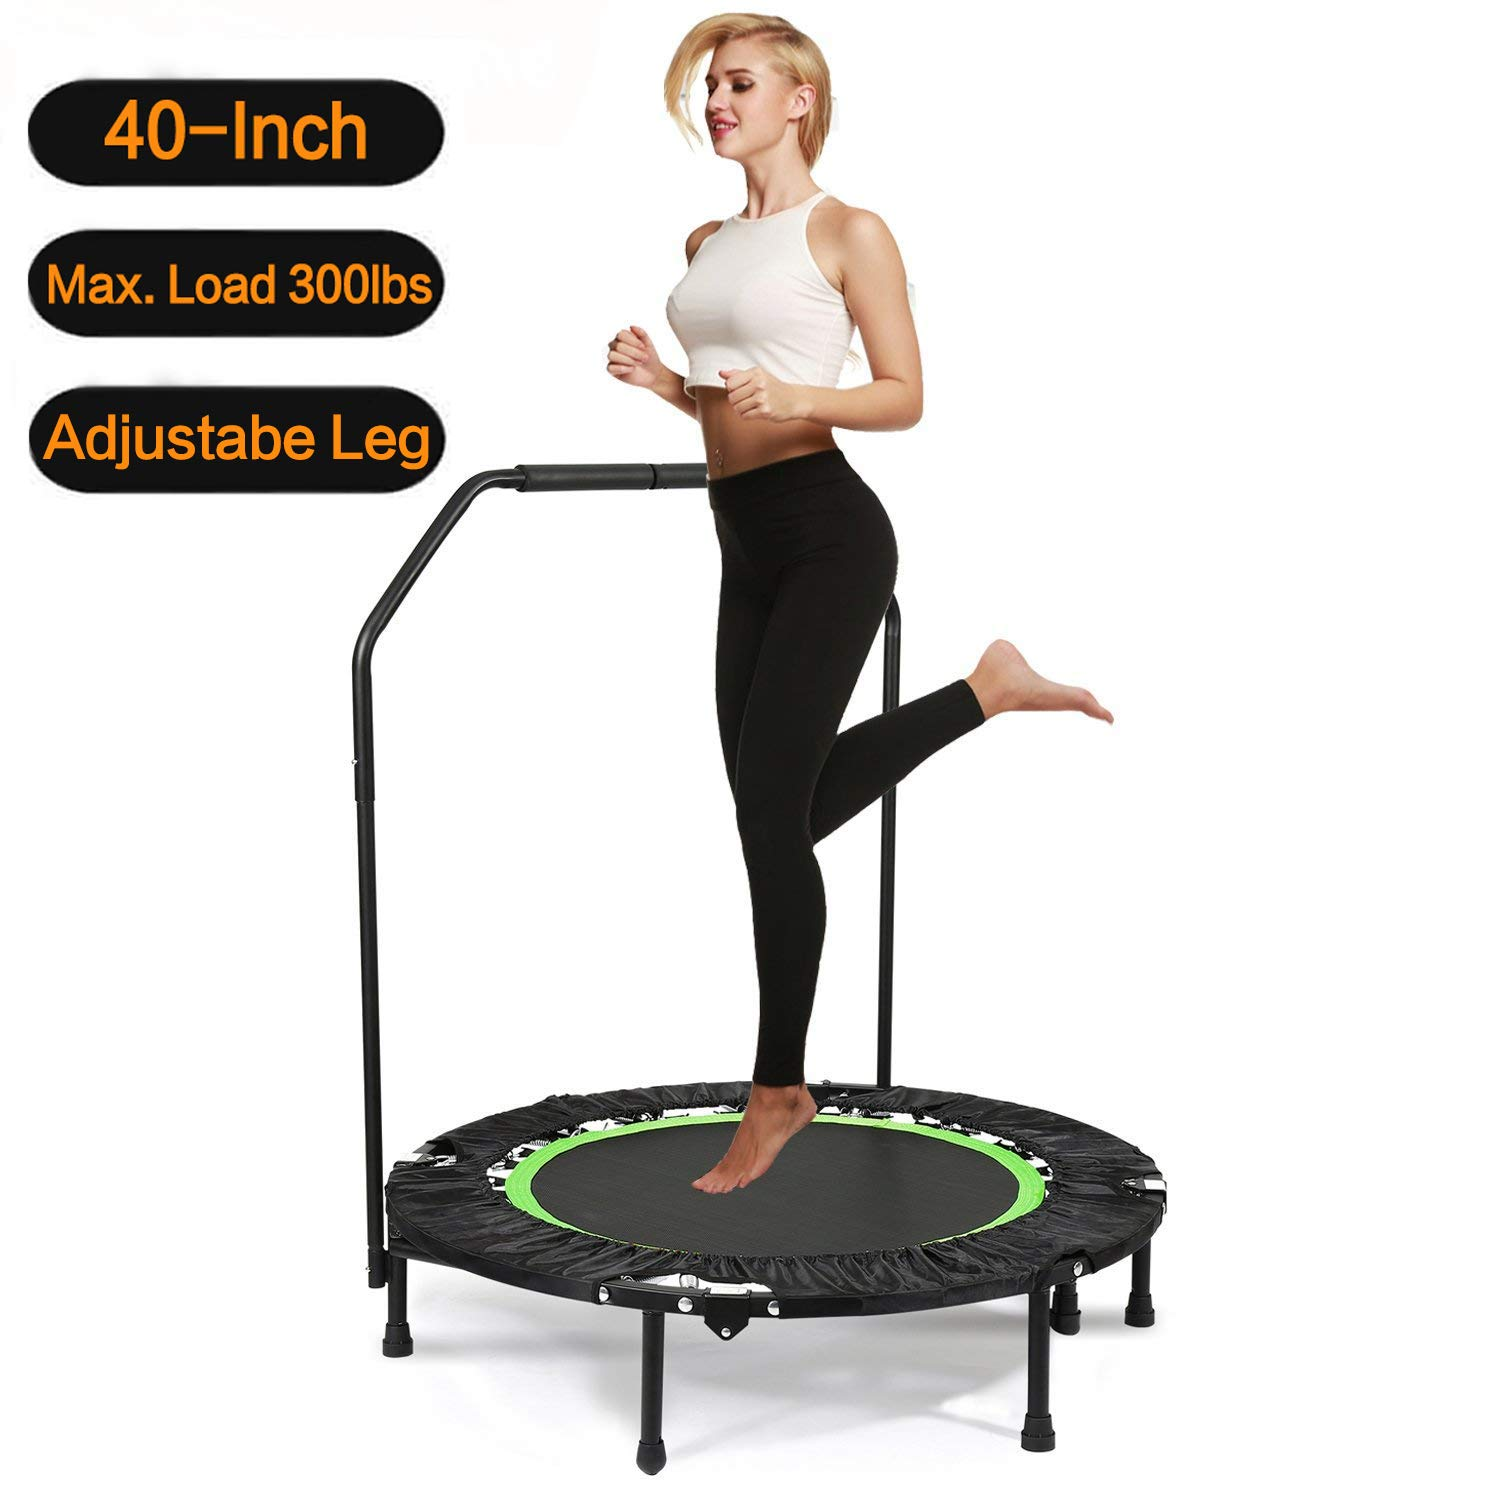 Hosmat 40 Inch Mini Exercise Trampoline for Adults or Kids - Indoor Fitness Rebounder Trampoline with Adjustable Handle Bar & Legs| Max. Load 300LBS (Green) by Balanu